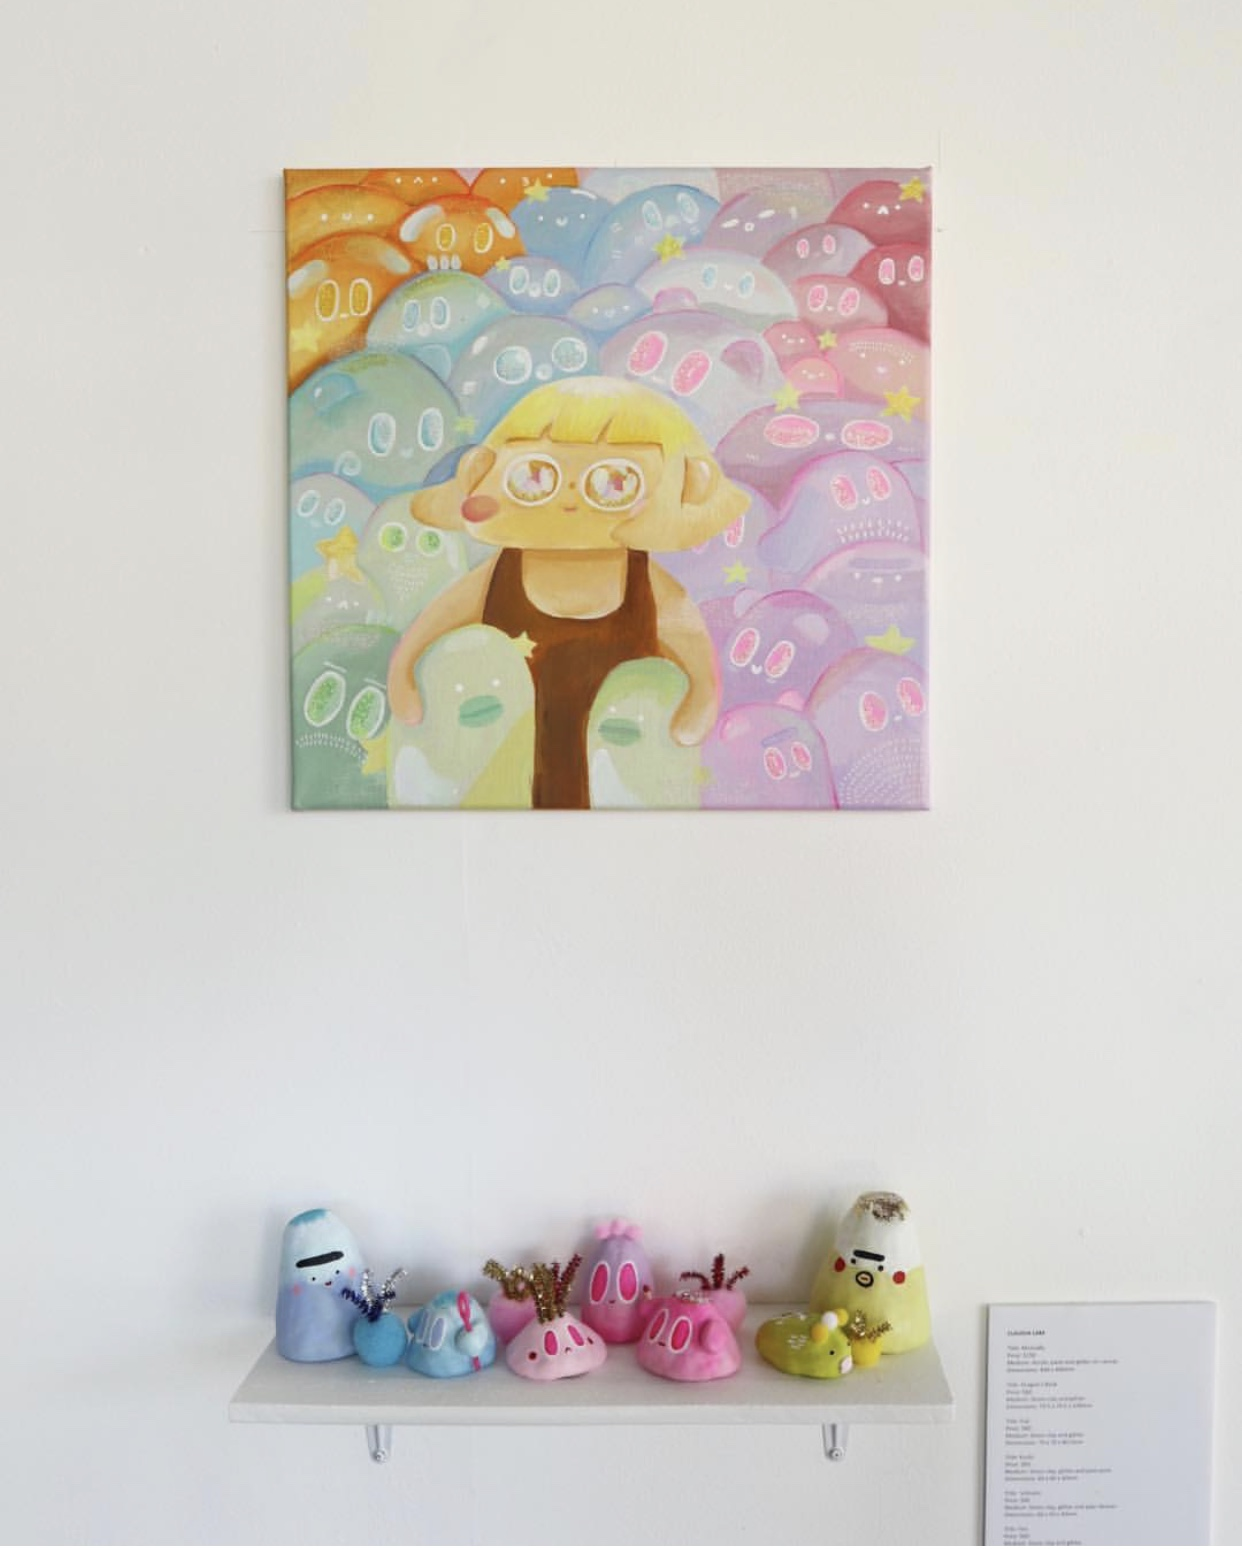 Mutually -  for a group show called 'Symbiosis' exhibited at Perth's City Art Space.